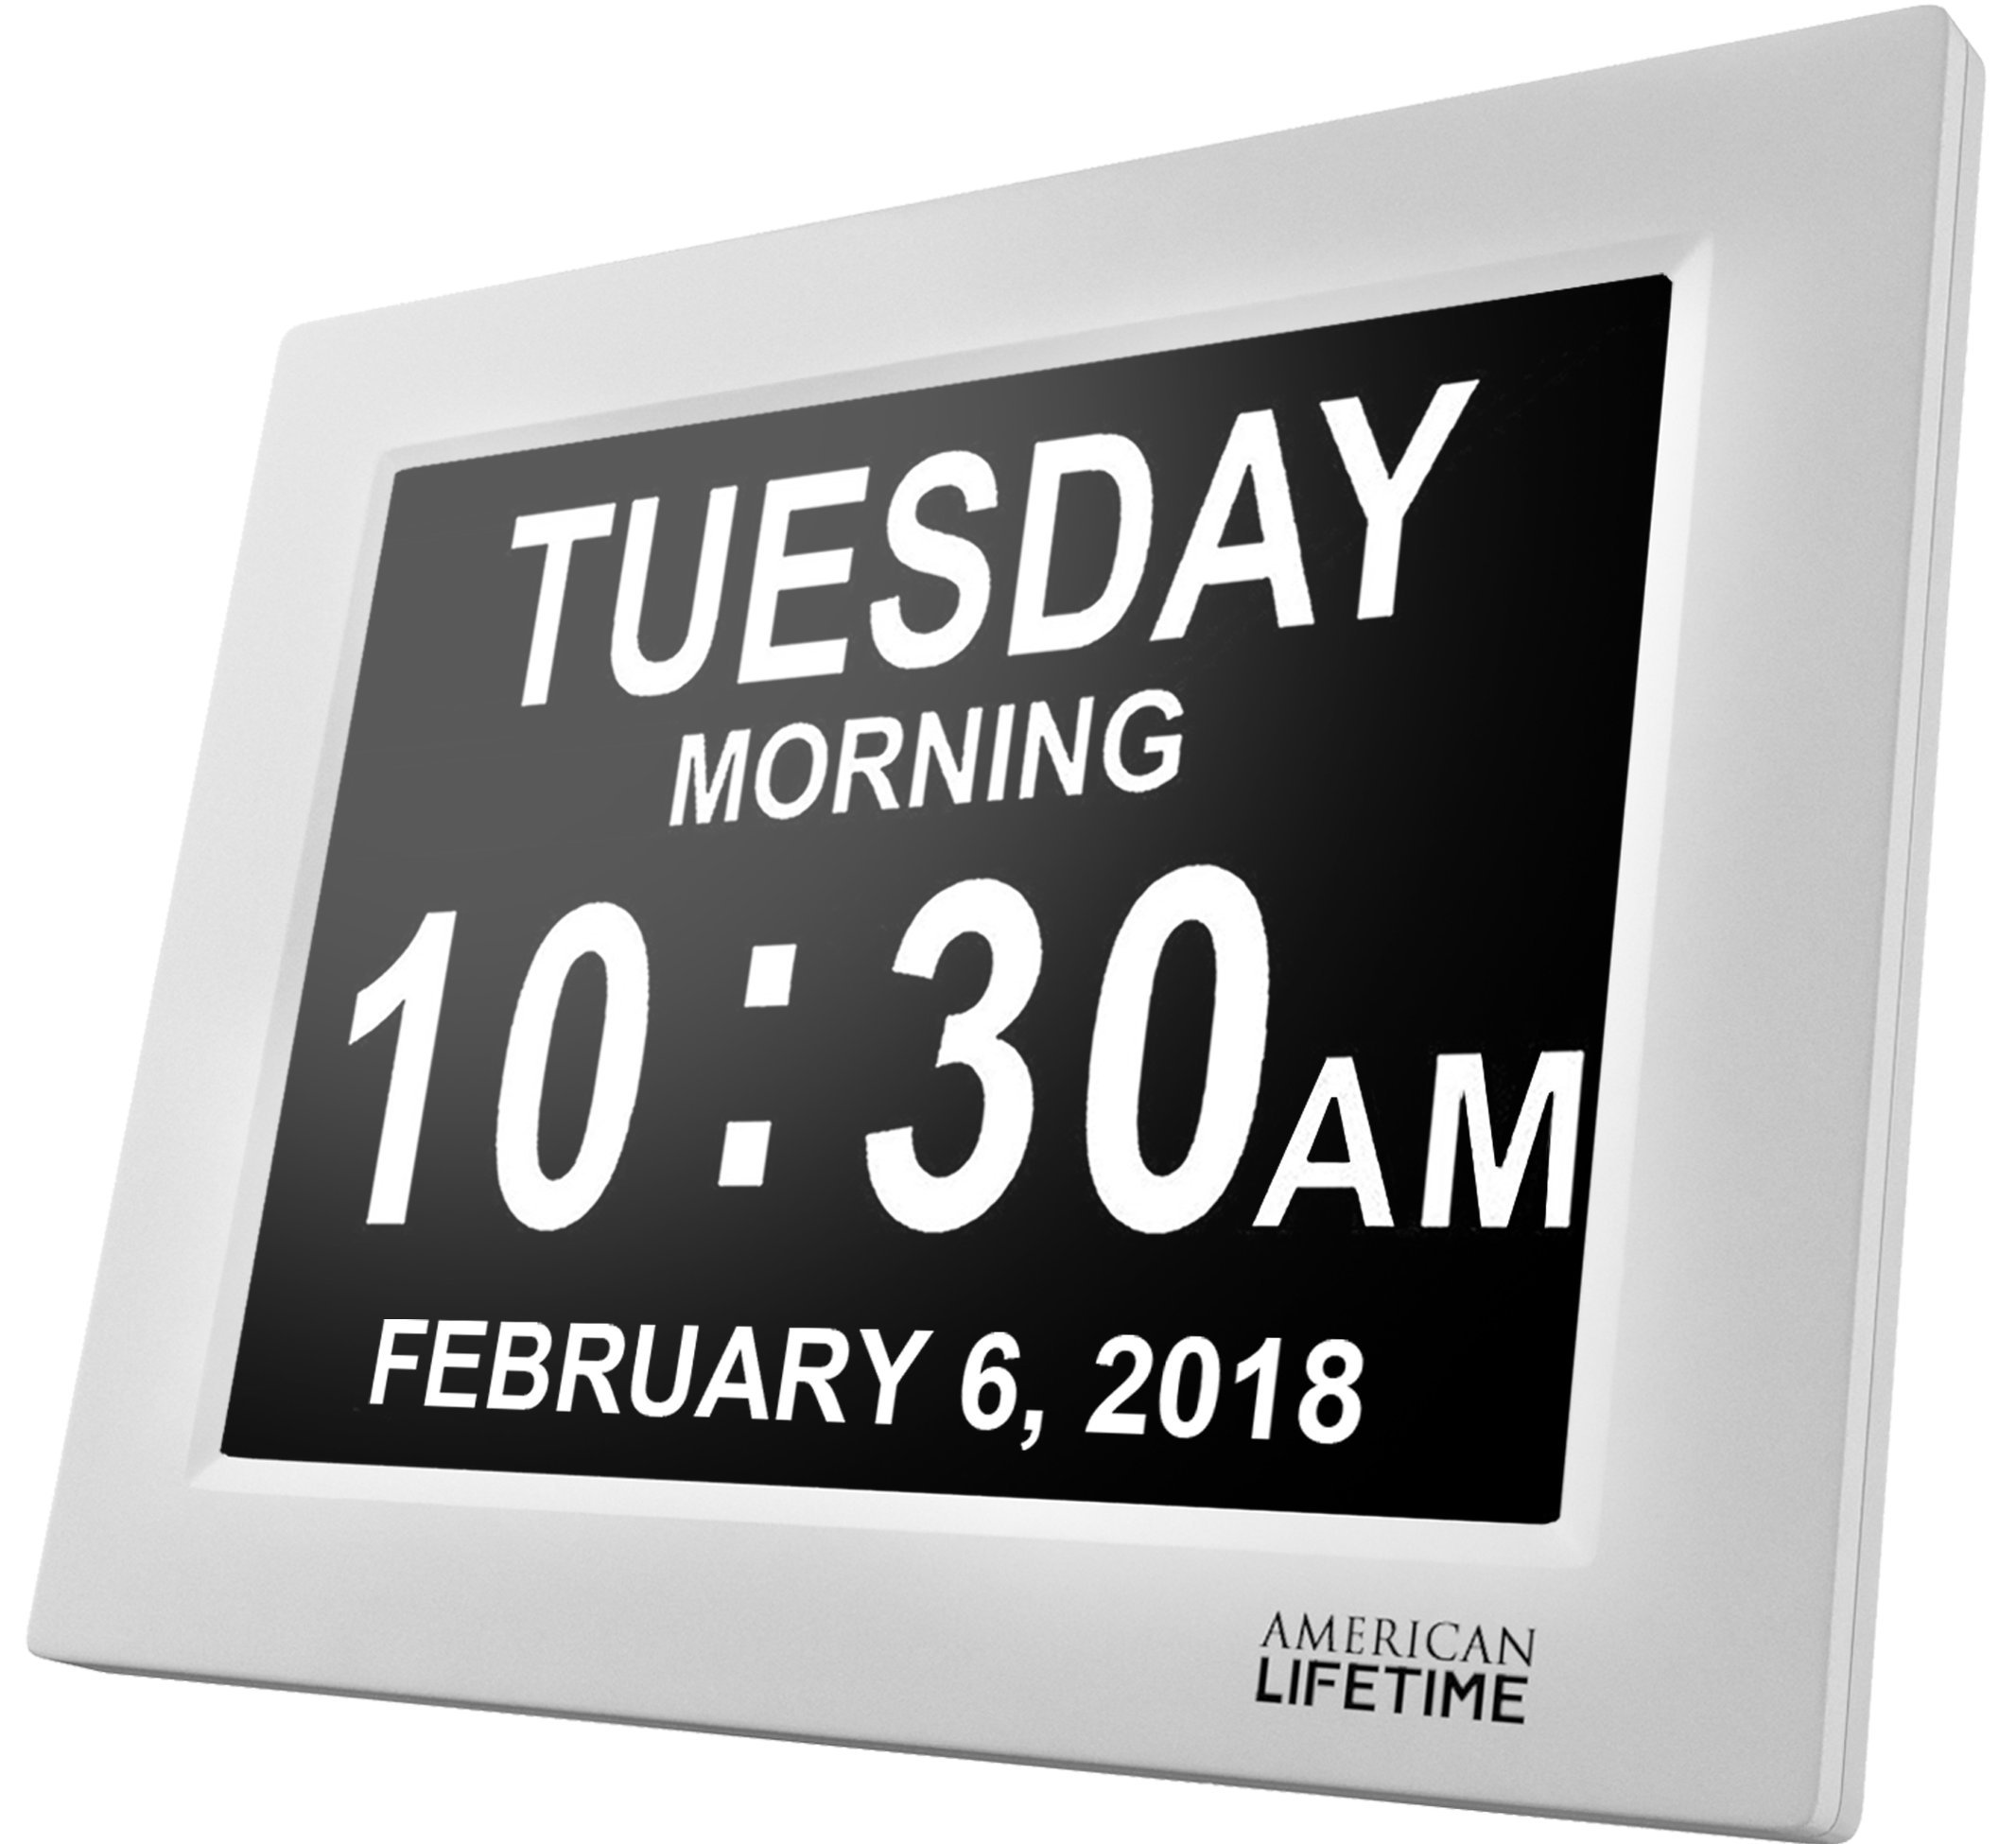 American Lifetime [Newest Version] Day Clock - Extra Large Impaired Vision Digital Clock with Battery Backup & 5 Alarm Options - White by American Lifetime